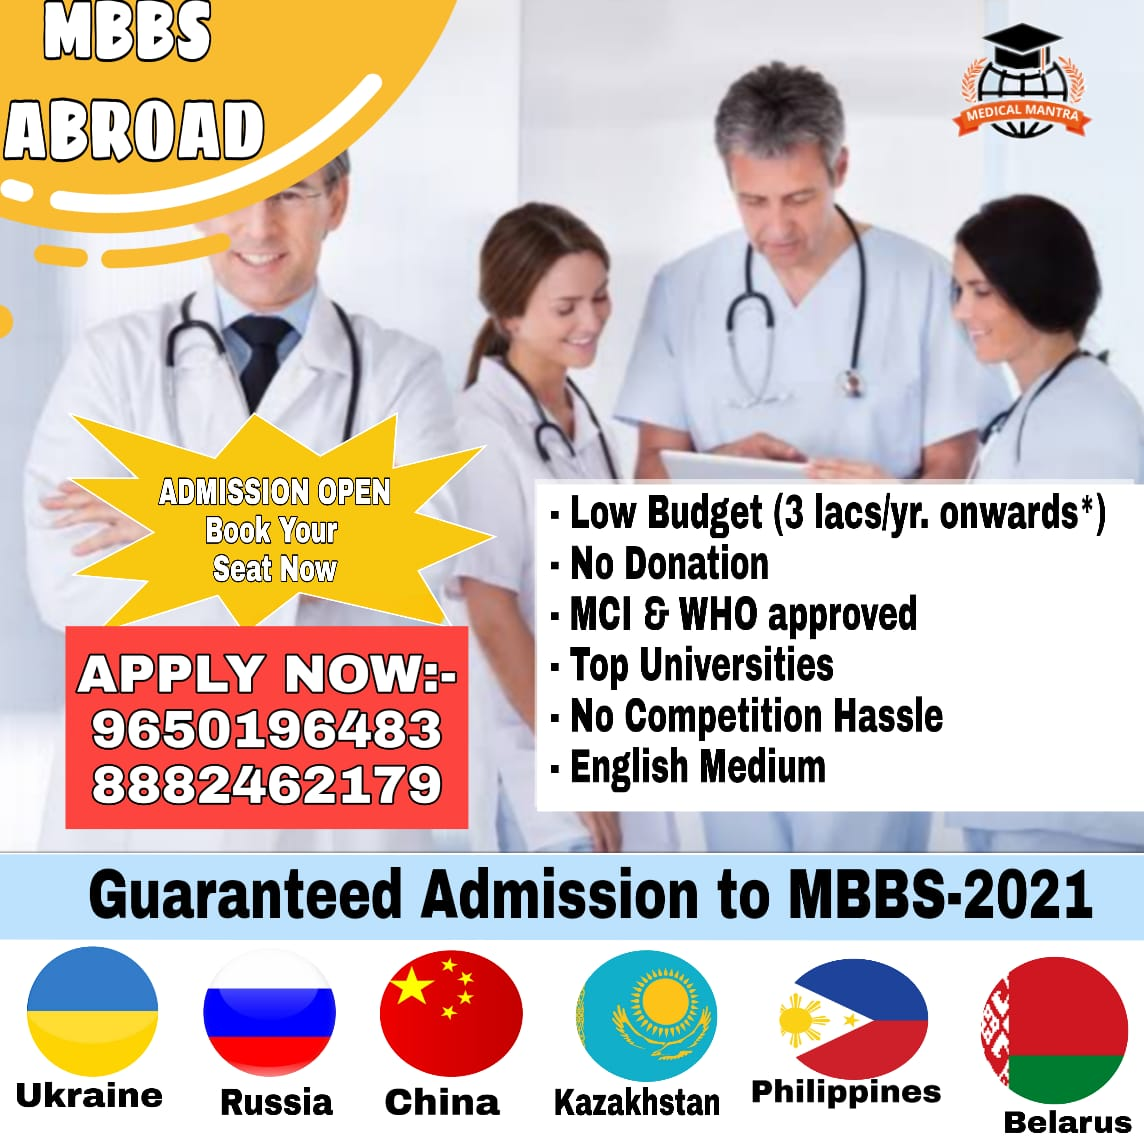 Low Budget MBBS Abroad_Medical Mantra